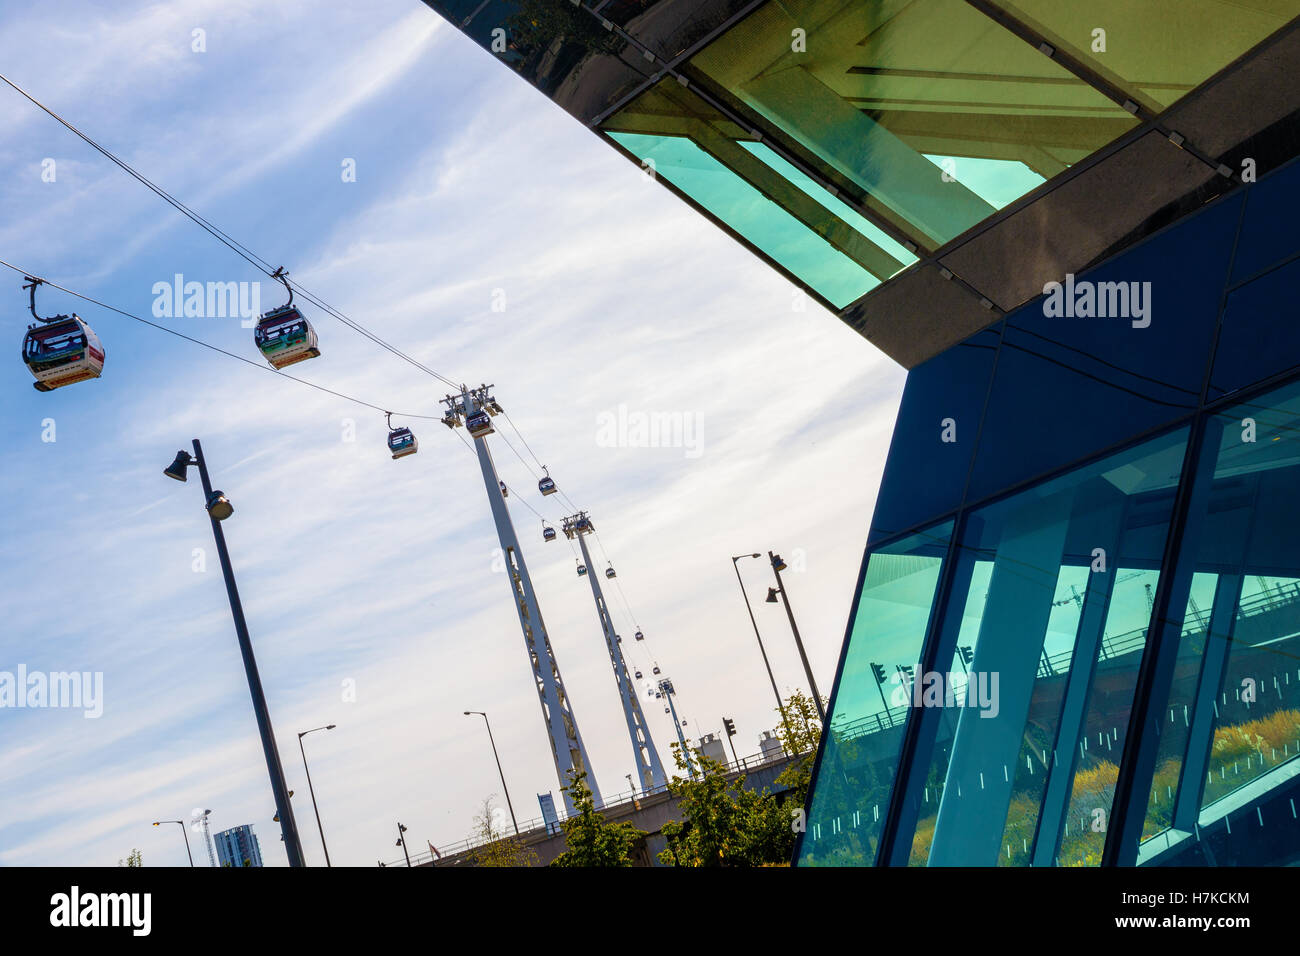 London, UK - August 26, 2016 - The Emirate Air Line or Thames Cable Car at sunset - Stock Image